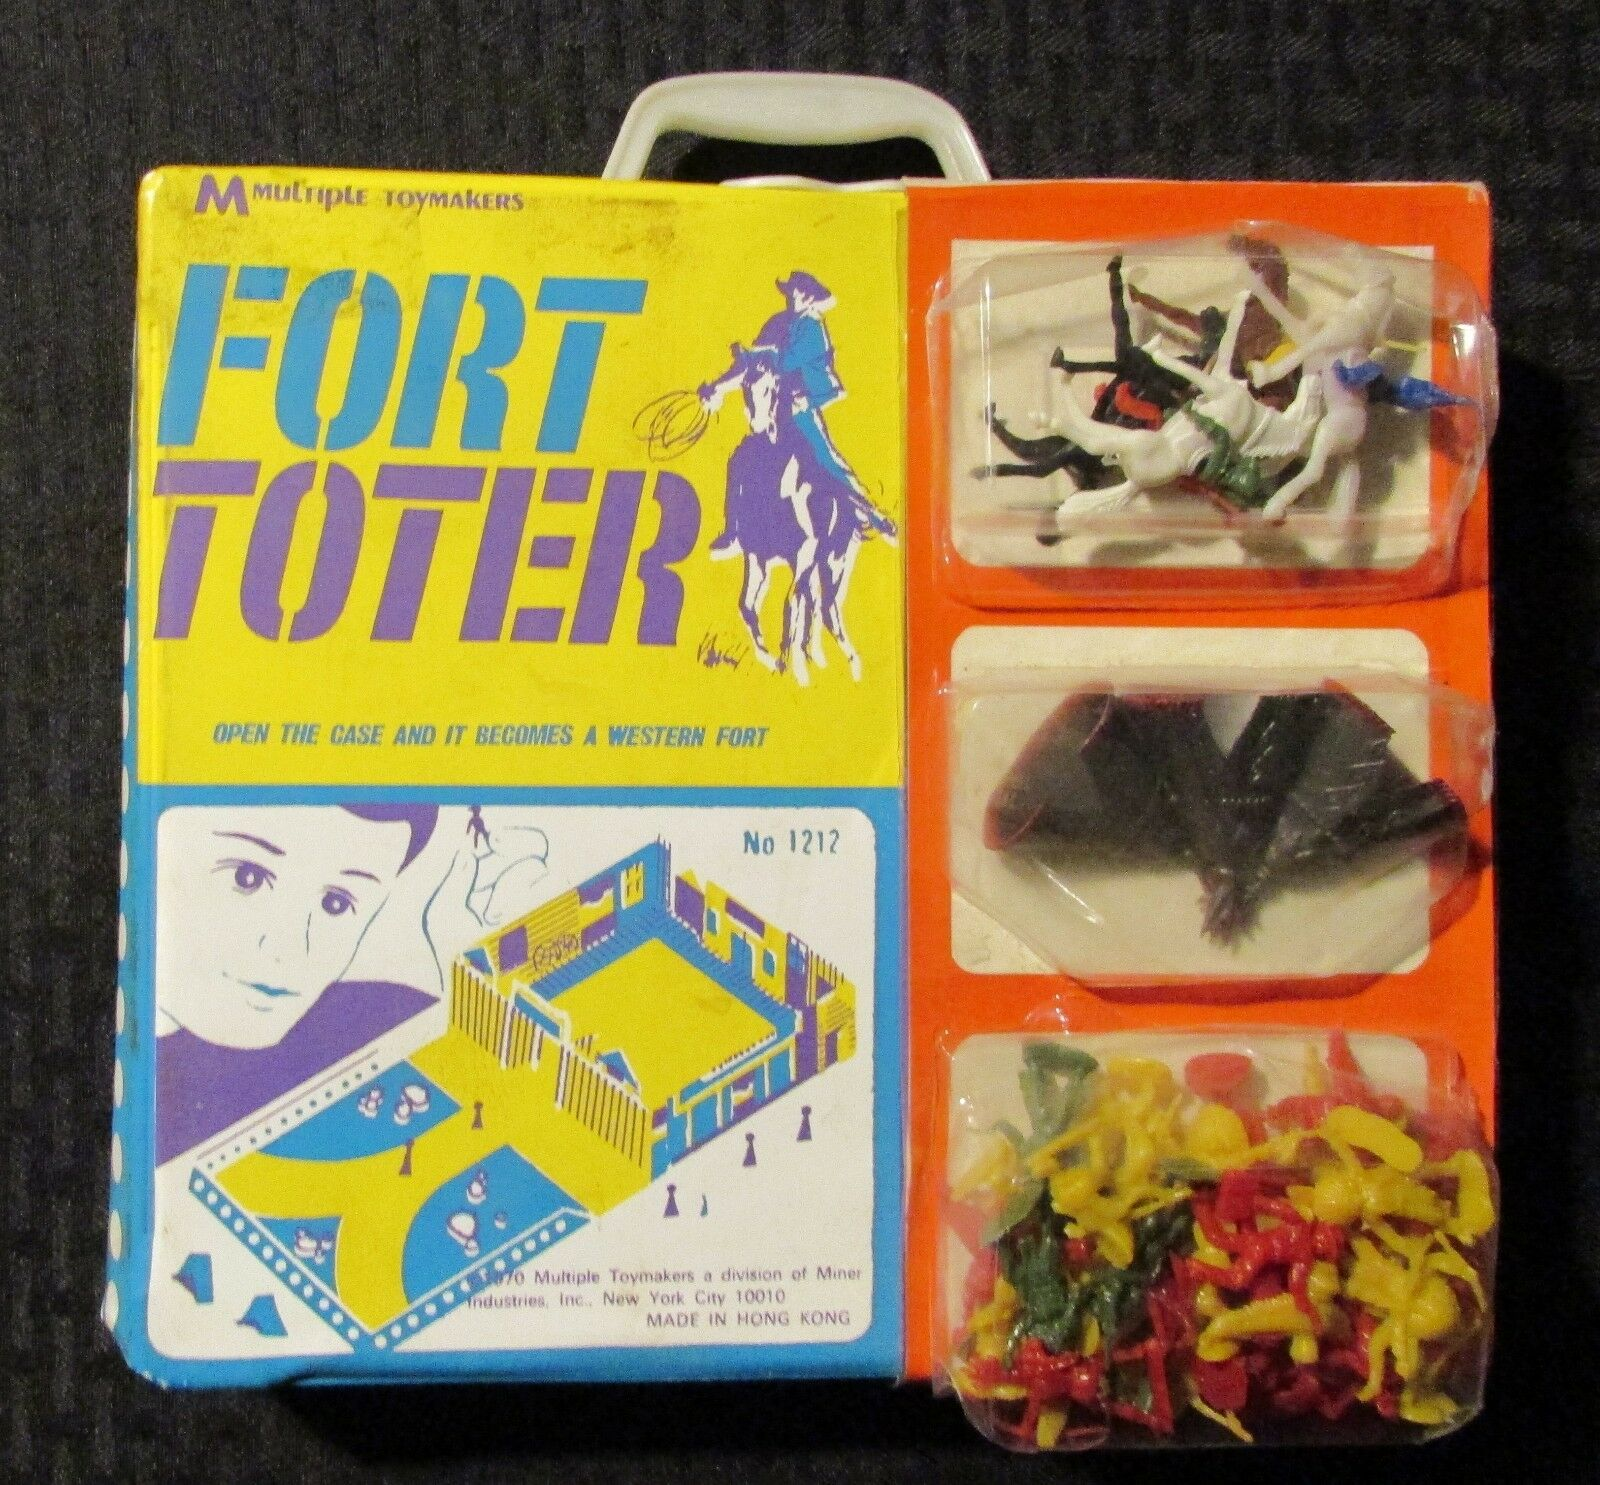 1970 FORT TOTER Western Playset SEALED Accessories in FN 6.0 Case